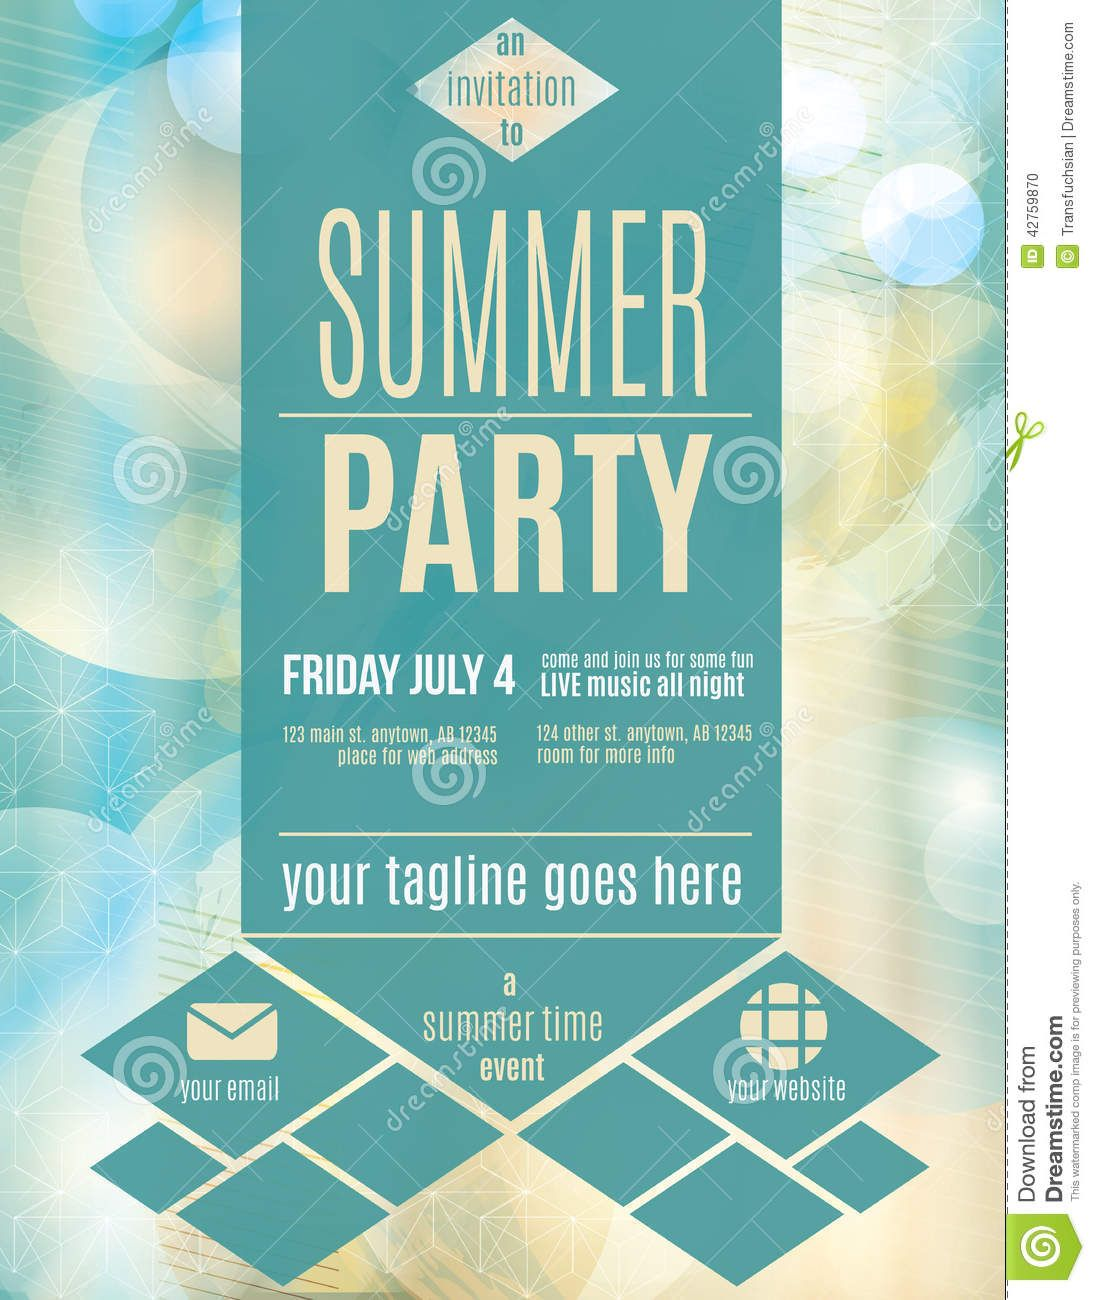 Modern Style Summer Party Flyer Template   Download From Over 37 Million  High Quality Stock Photos